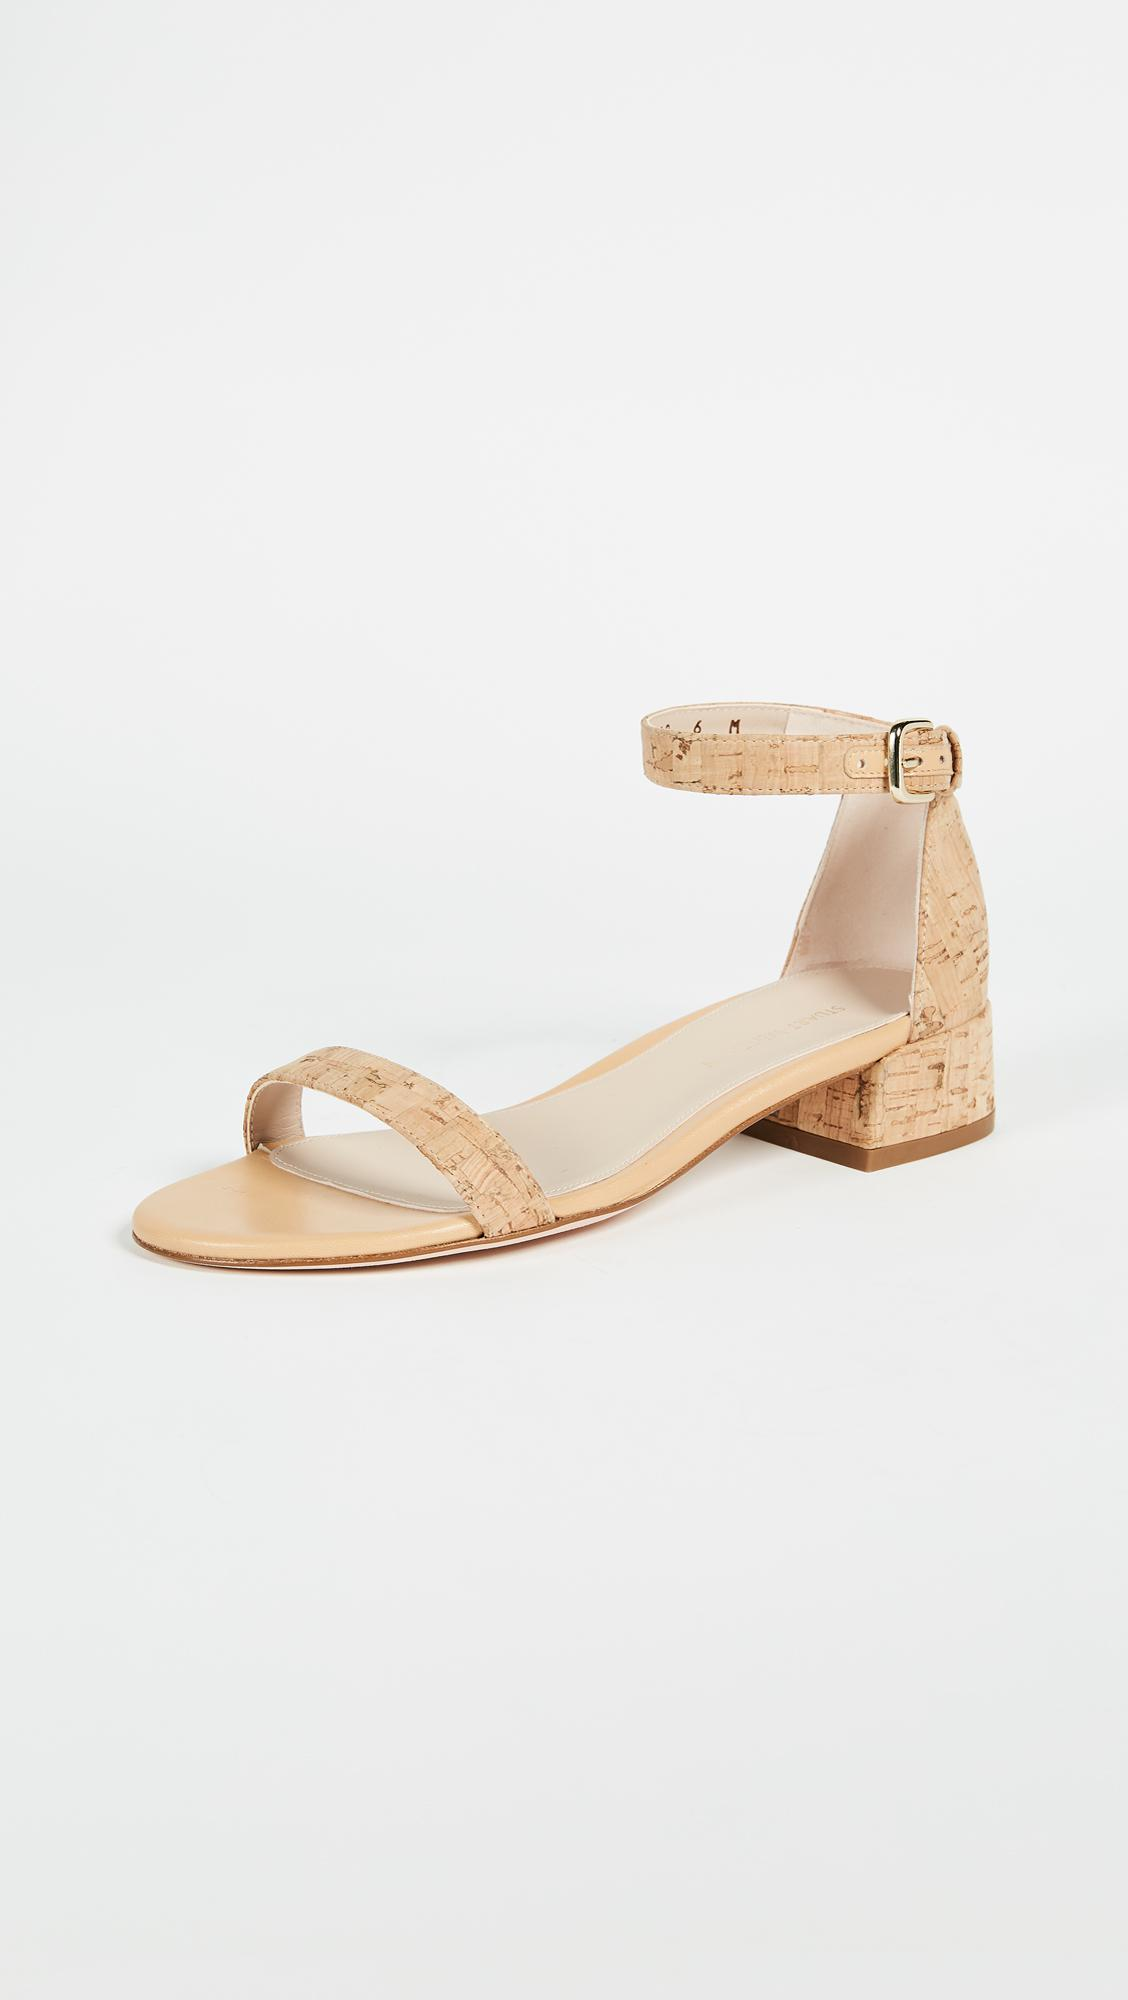 Stuart Weitzman Experience Woven Sandals w/ Tags with mastercard cheap online clearance factory outlet cheap popular T70y1